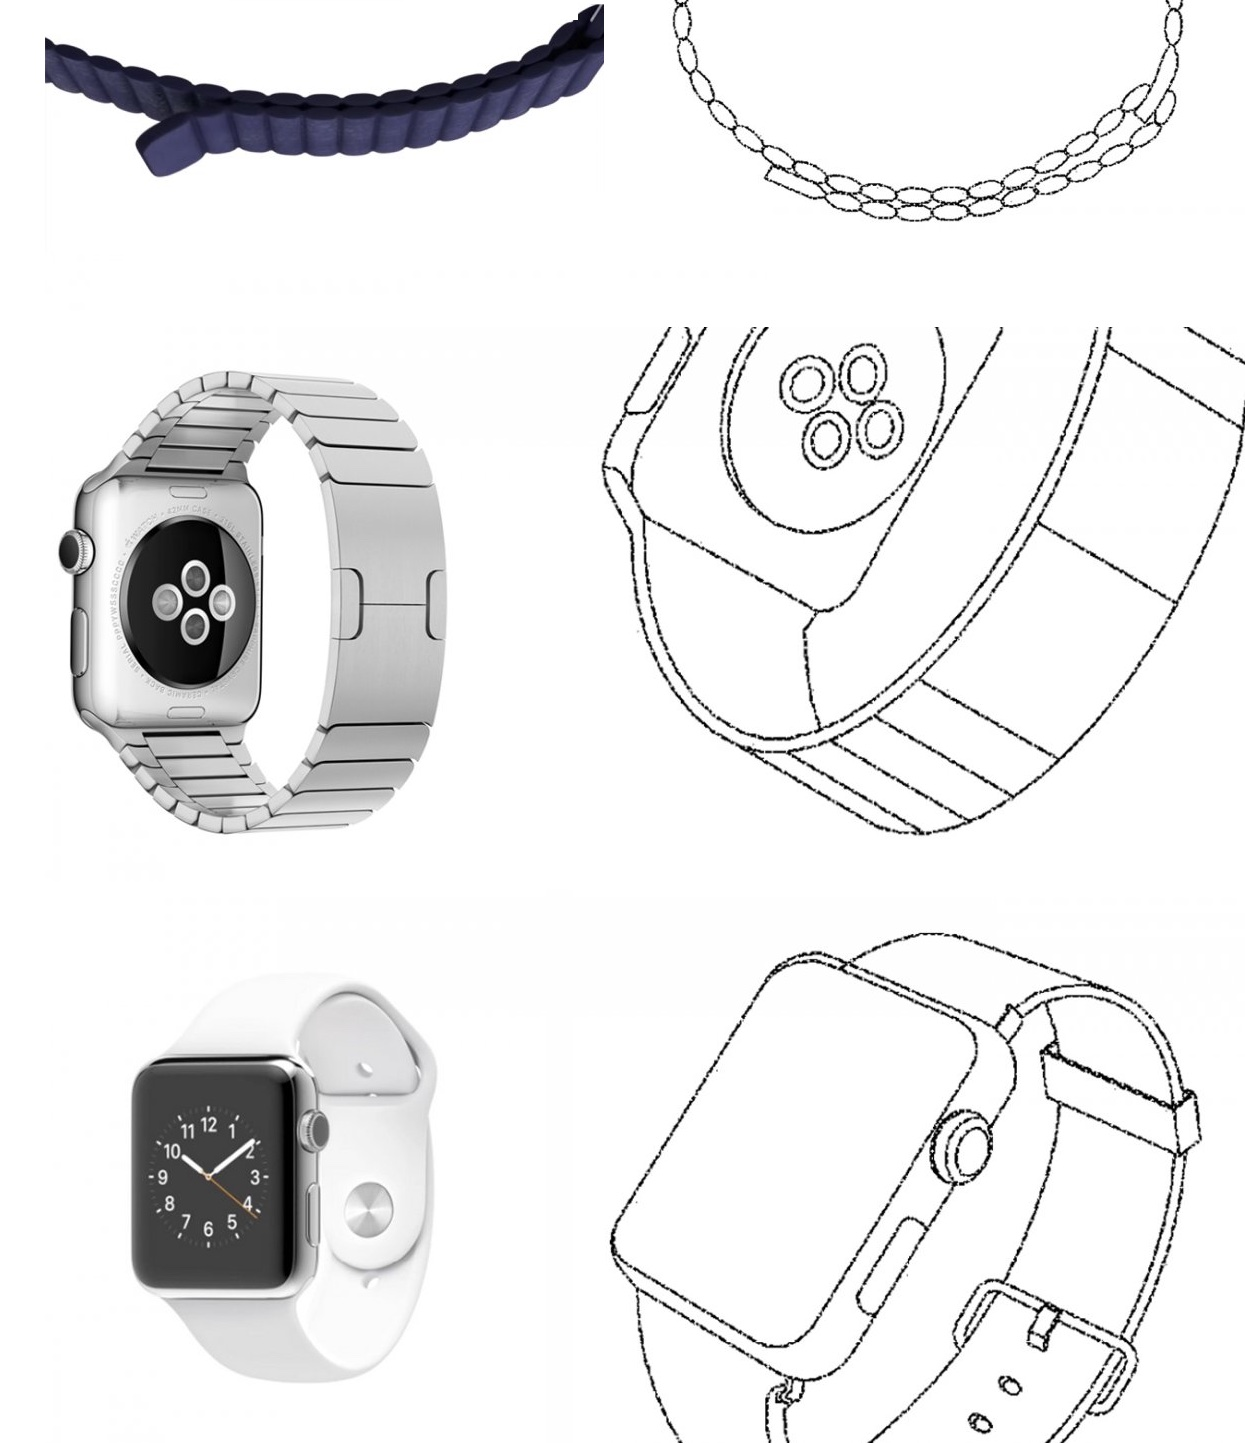 Samsung Wearable Device patent filing Apple Watch 005